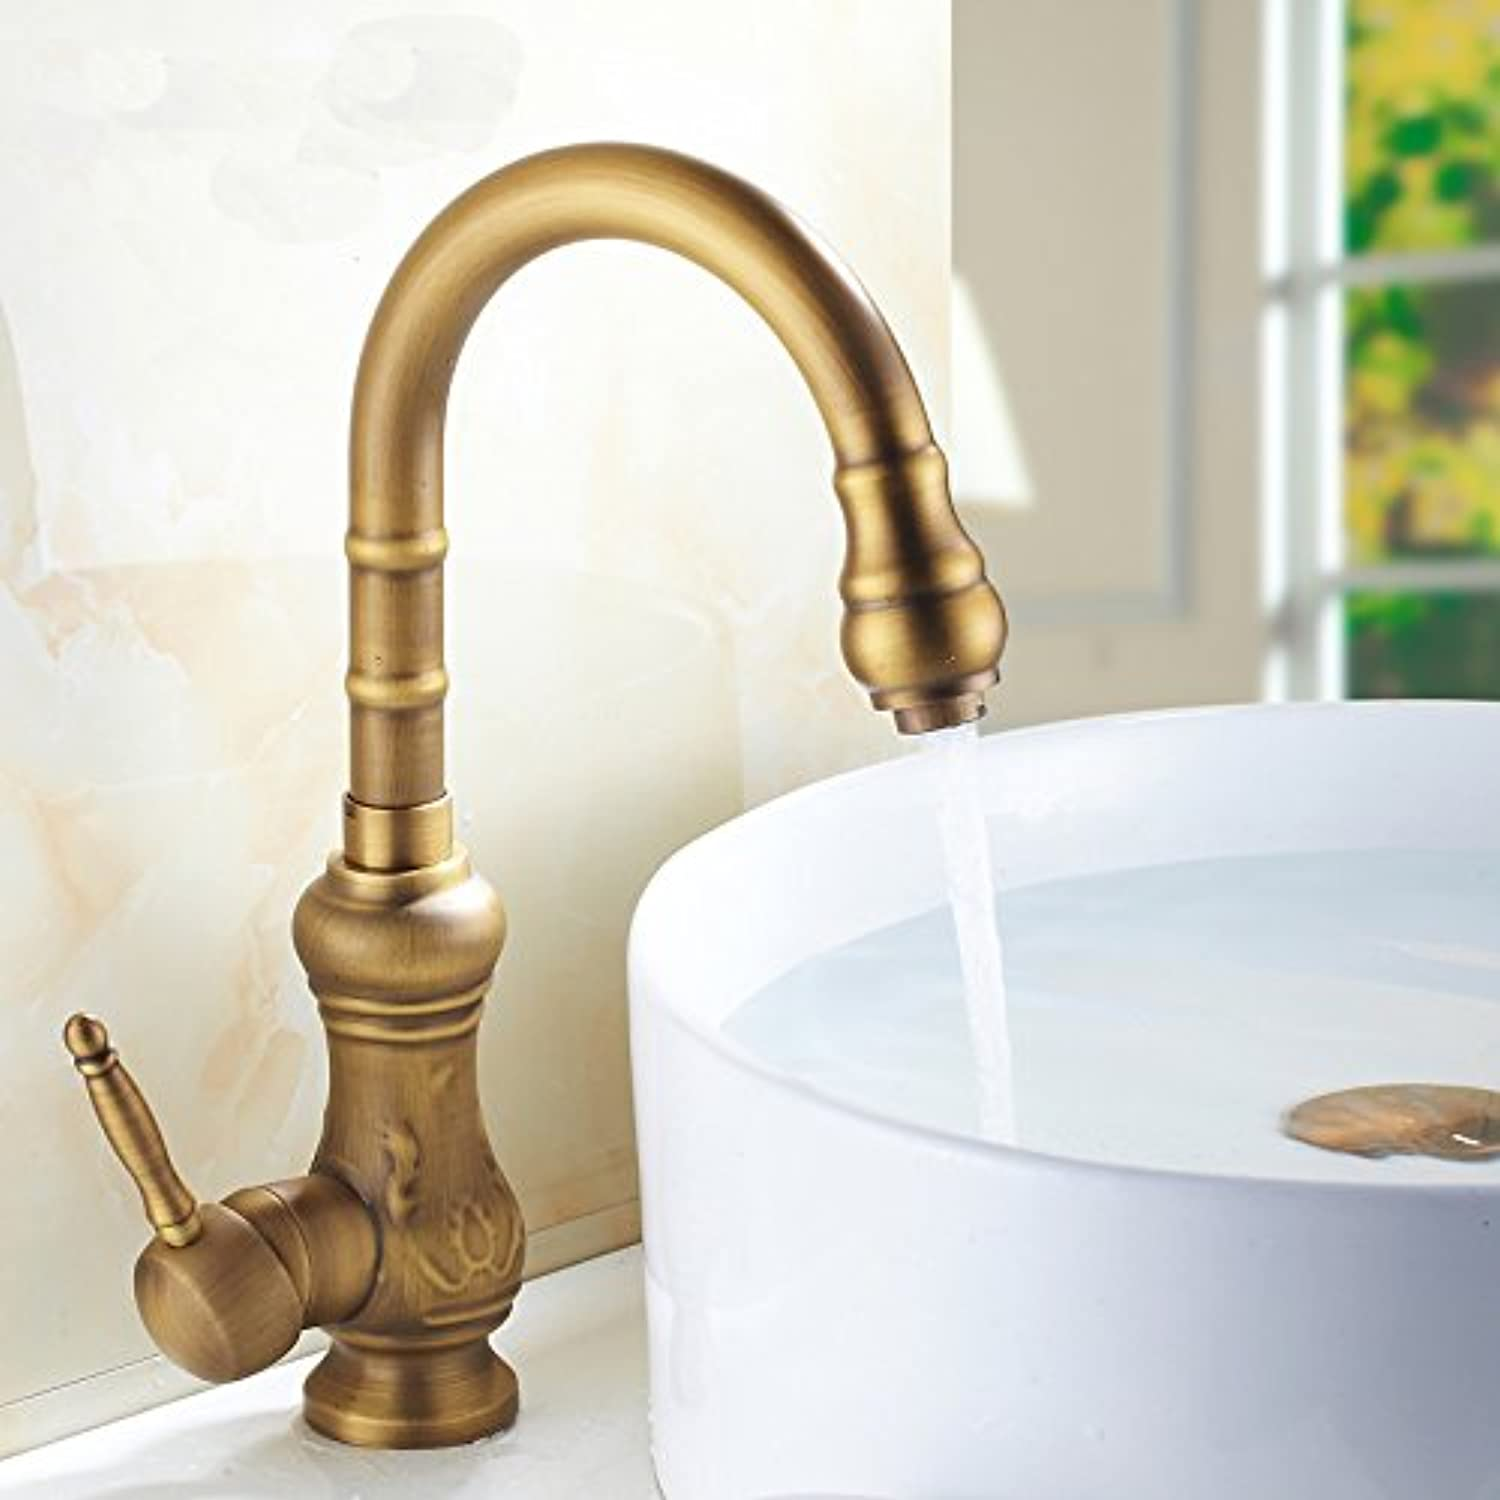 New Bronze Hot and Cold Taps Basin Platform Basin Single Hole Water Tank redary Faucet,Sink Dish Basin Tap